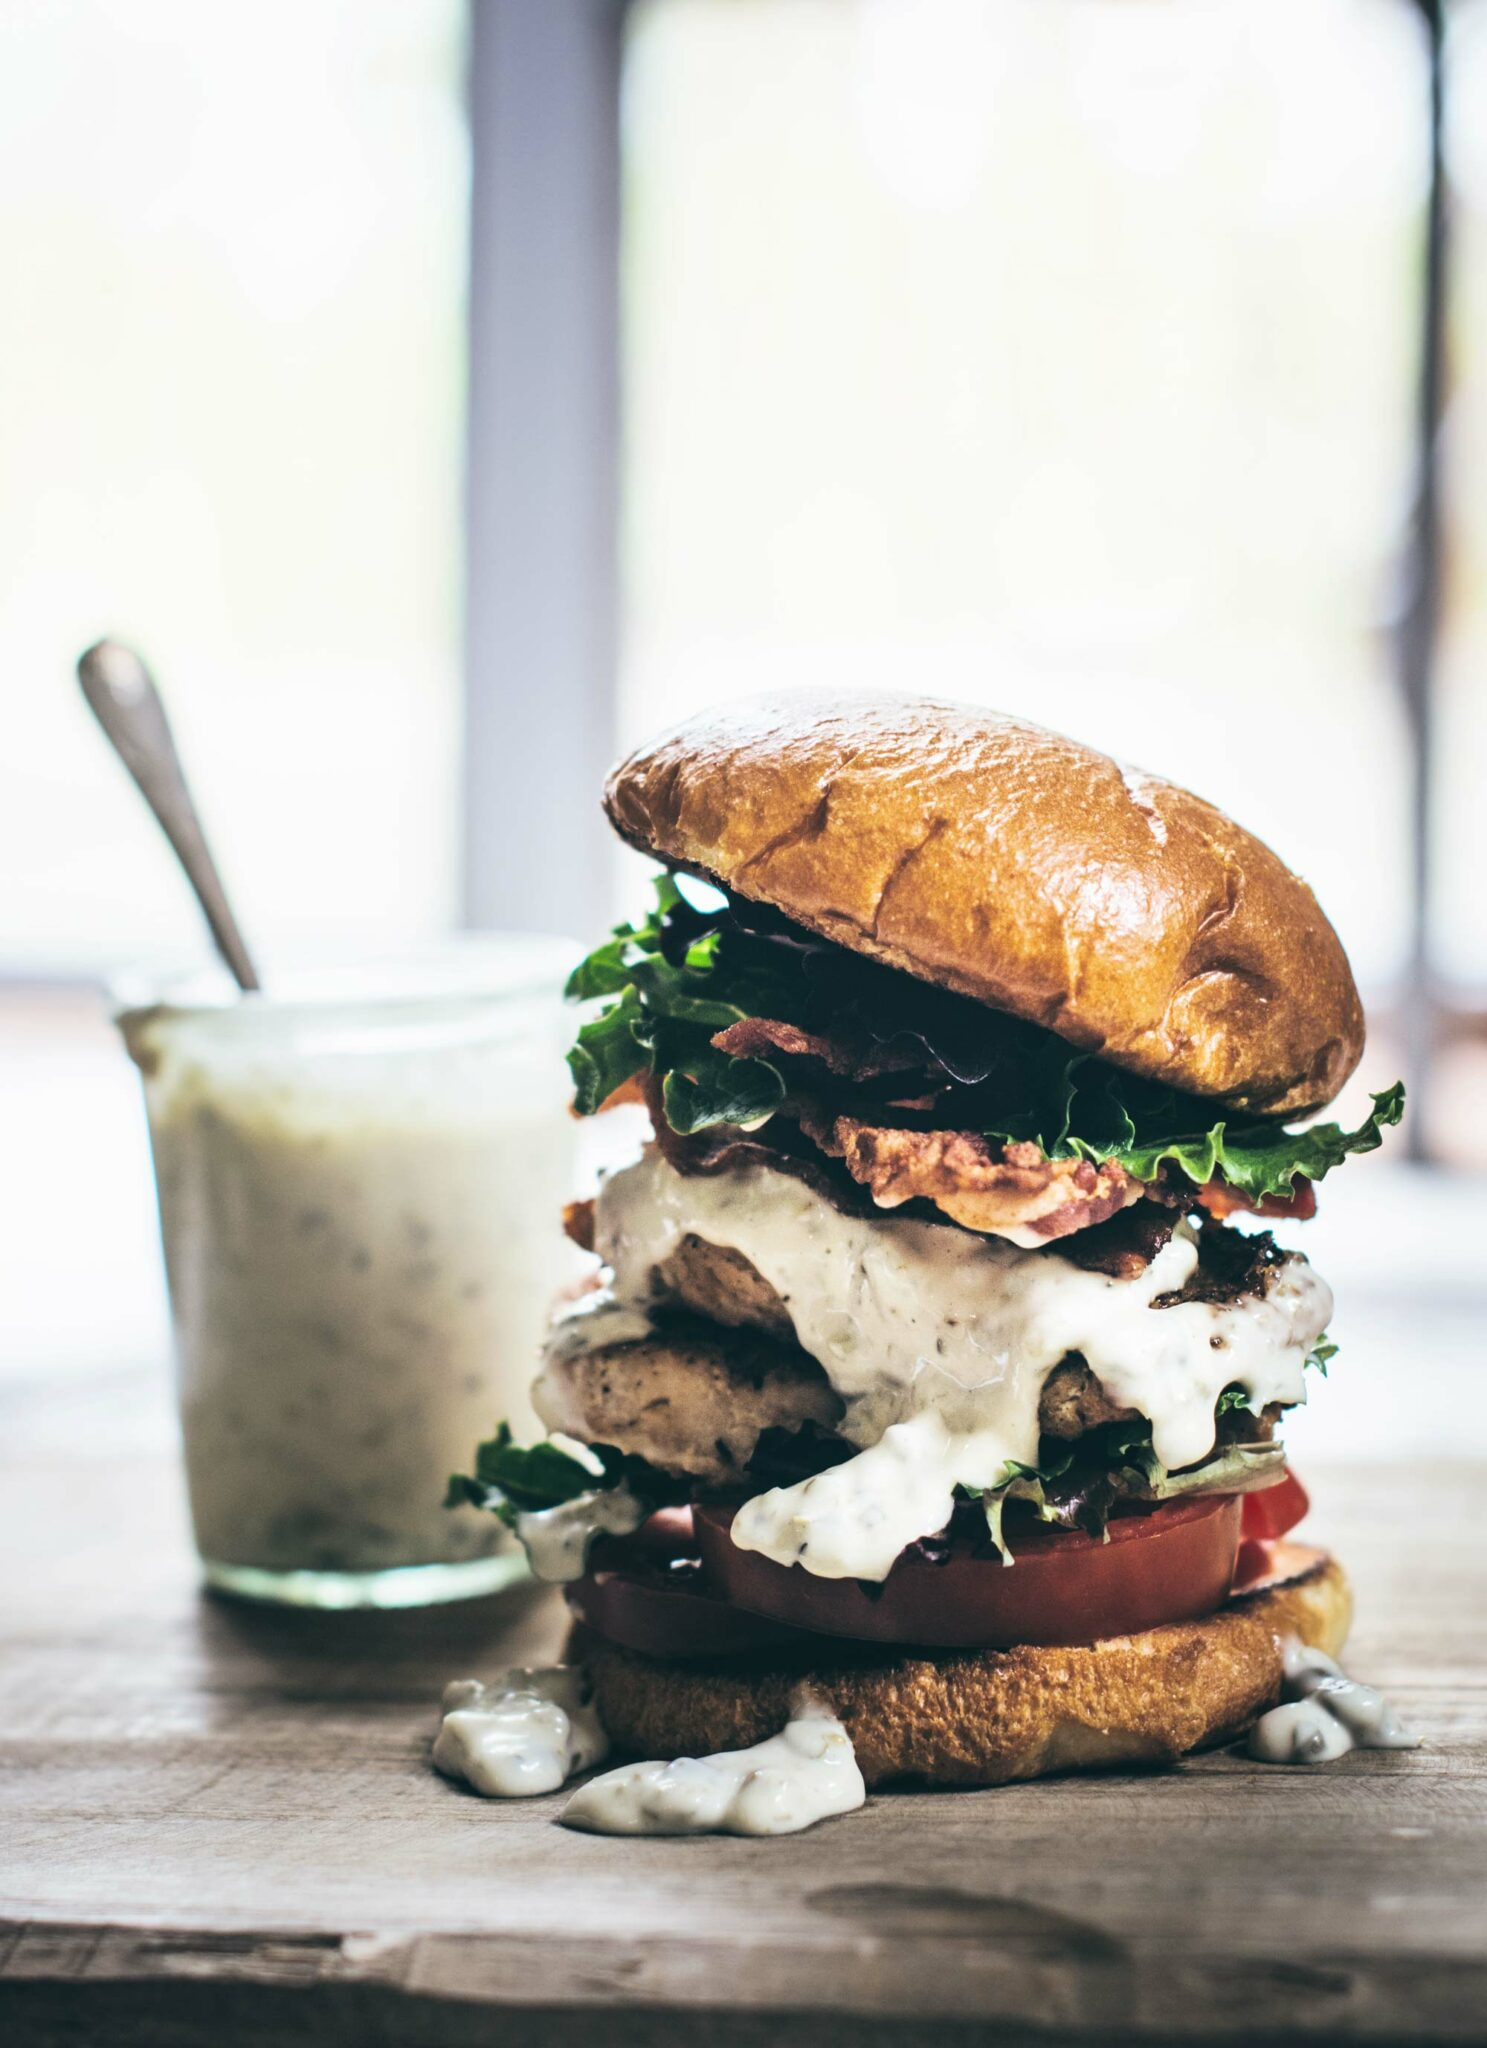 Blackened Salmon Burger with a Caper Remoulade